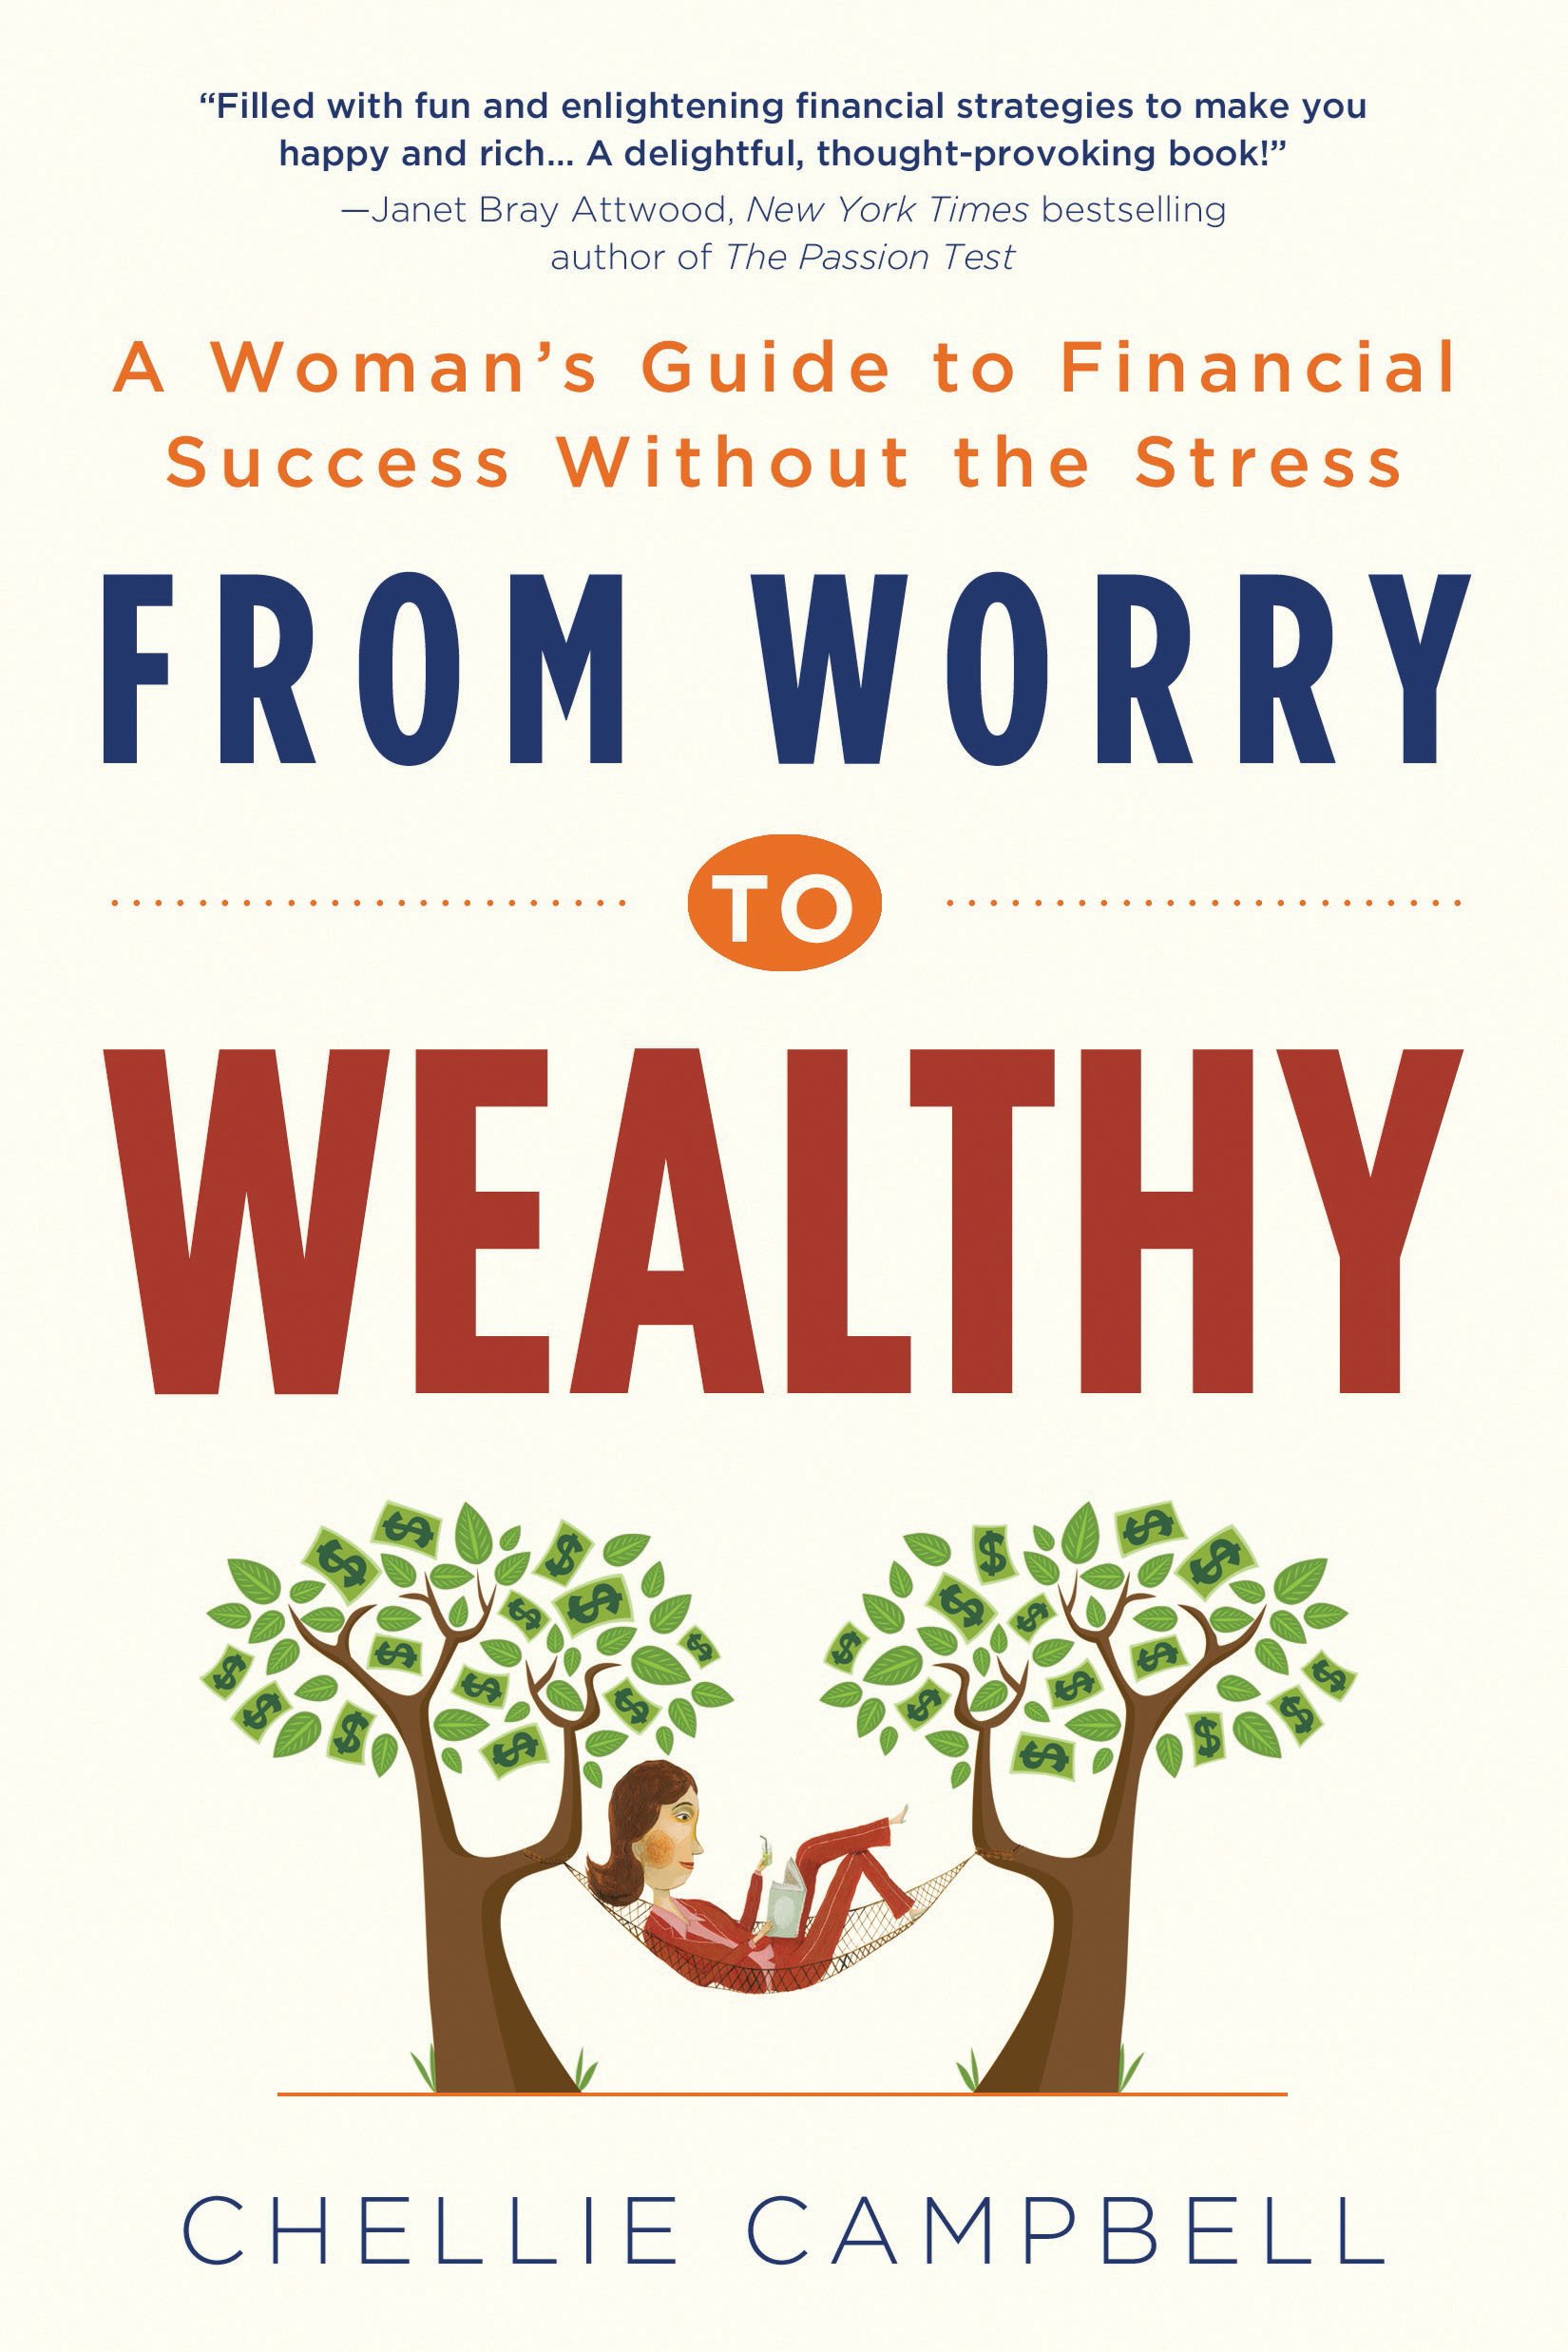 From worry to wealthy a womans guide to financial success from worry to wealthy a womans guide to financial success without the stress chellie campbell 0760789248627 amazon books fandeluxe Gallery